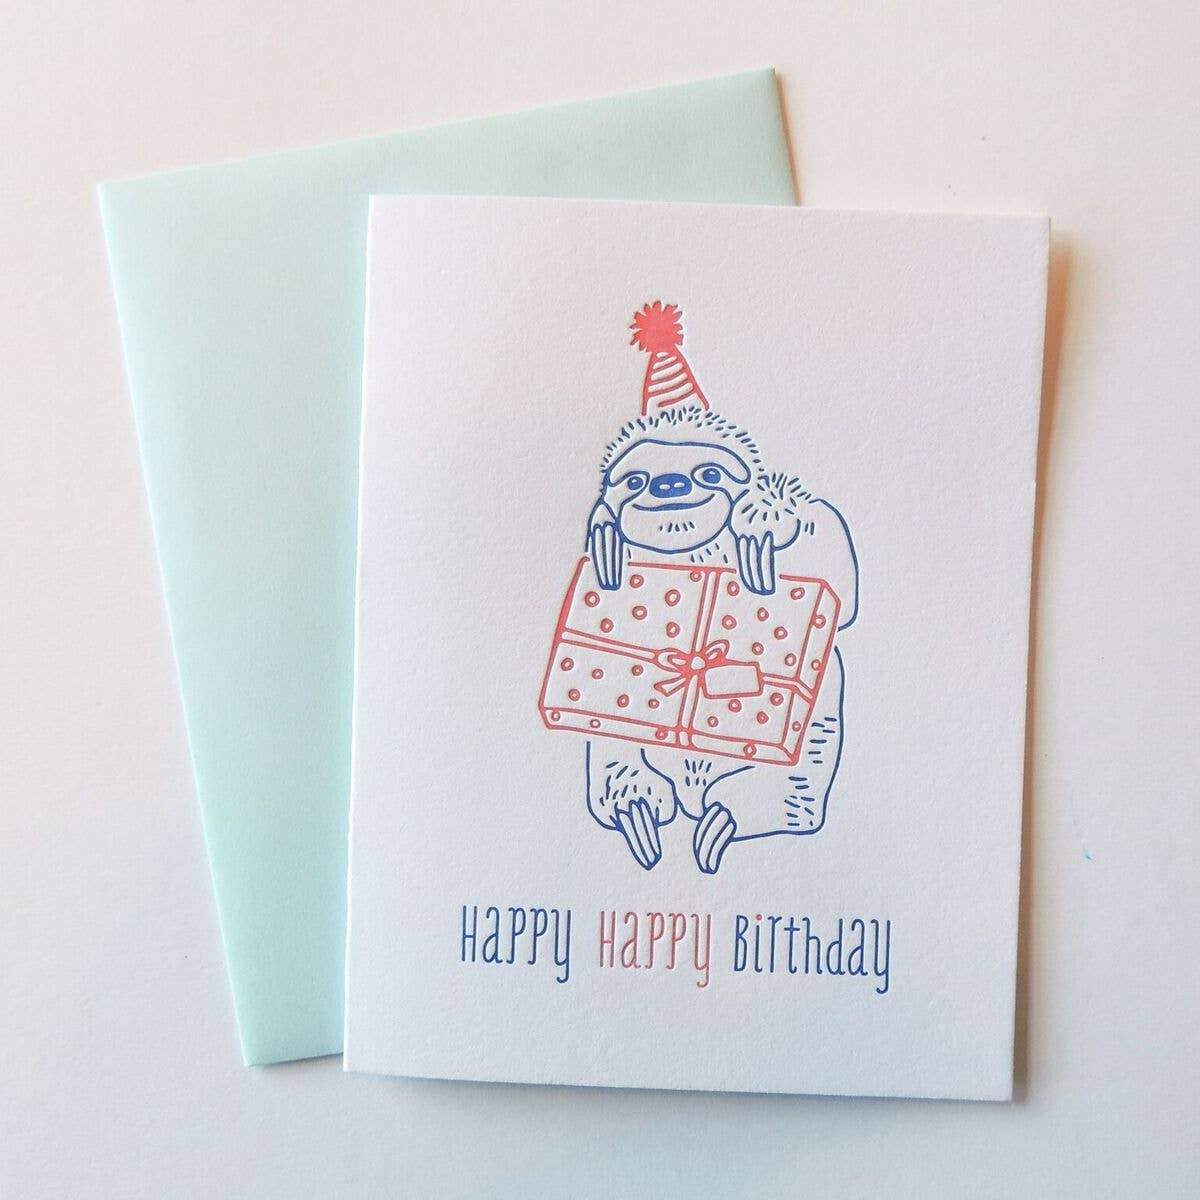 Harken Press - Happy Sloth Birthday Card